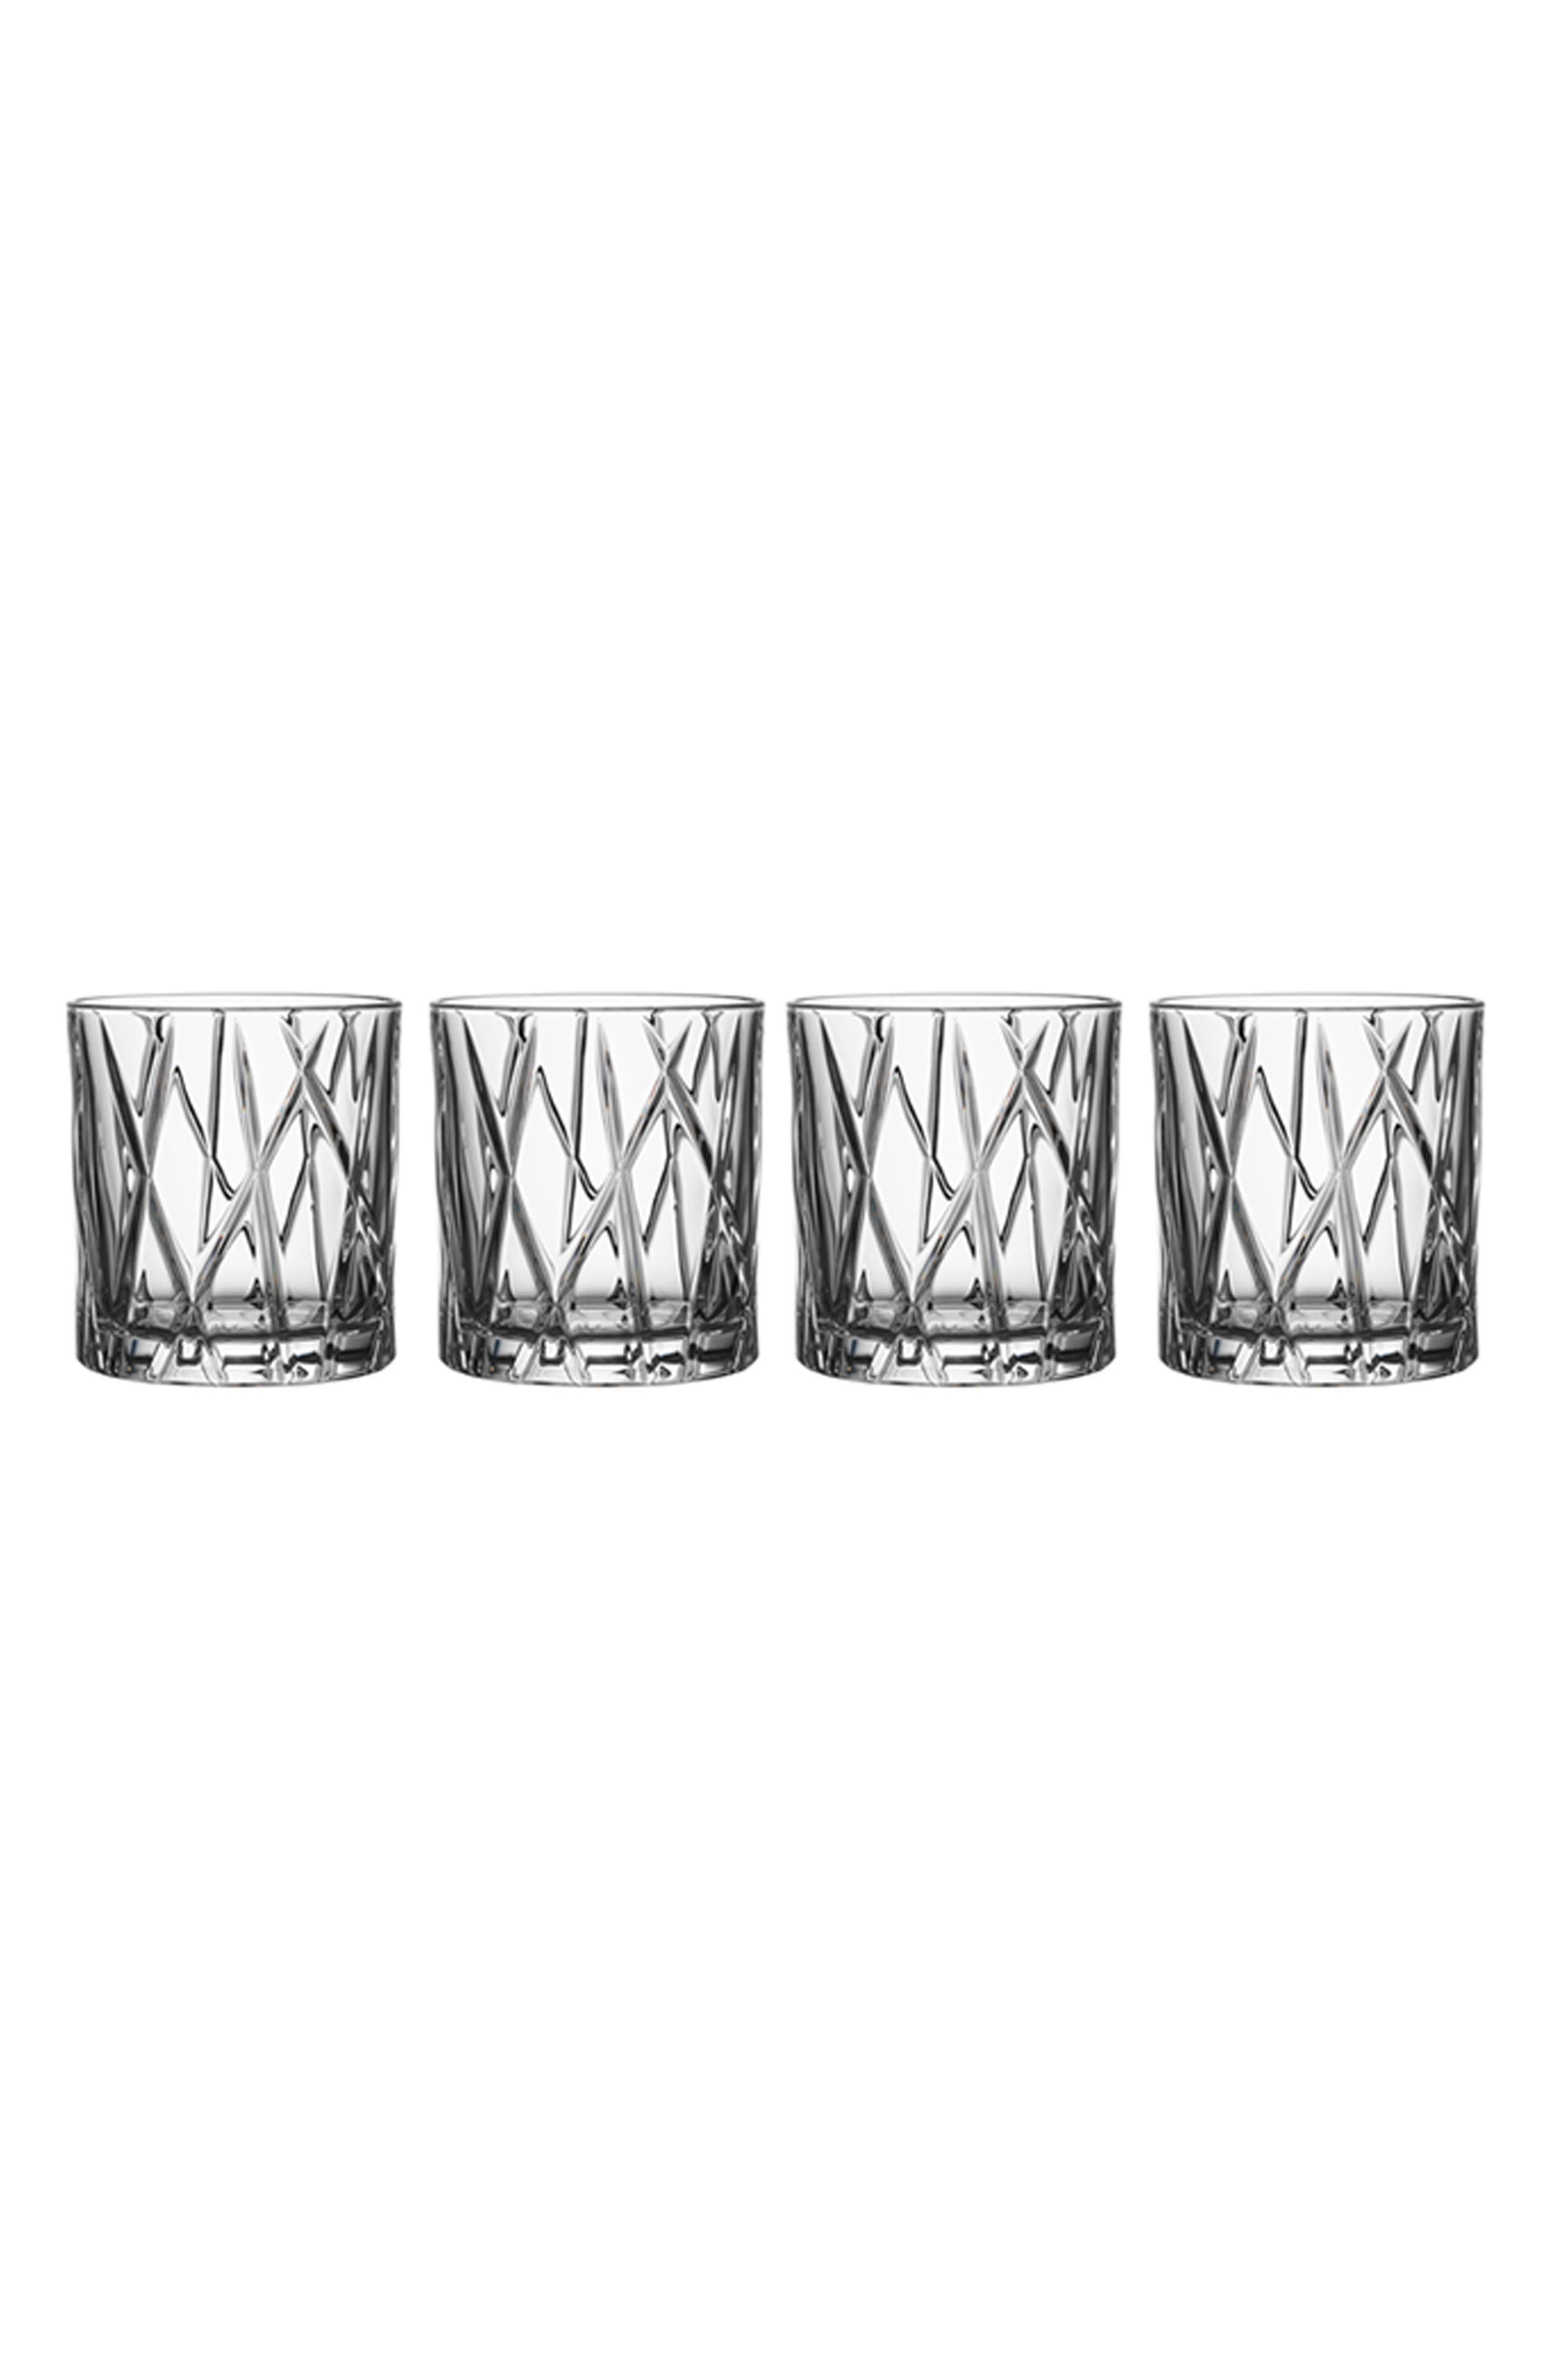 Alternate Image 1 Selected - Orrefors City Set of 4 Crystal Old Fashioned Glasses